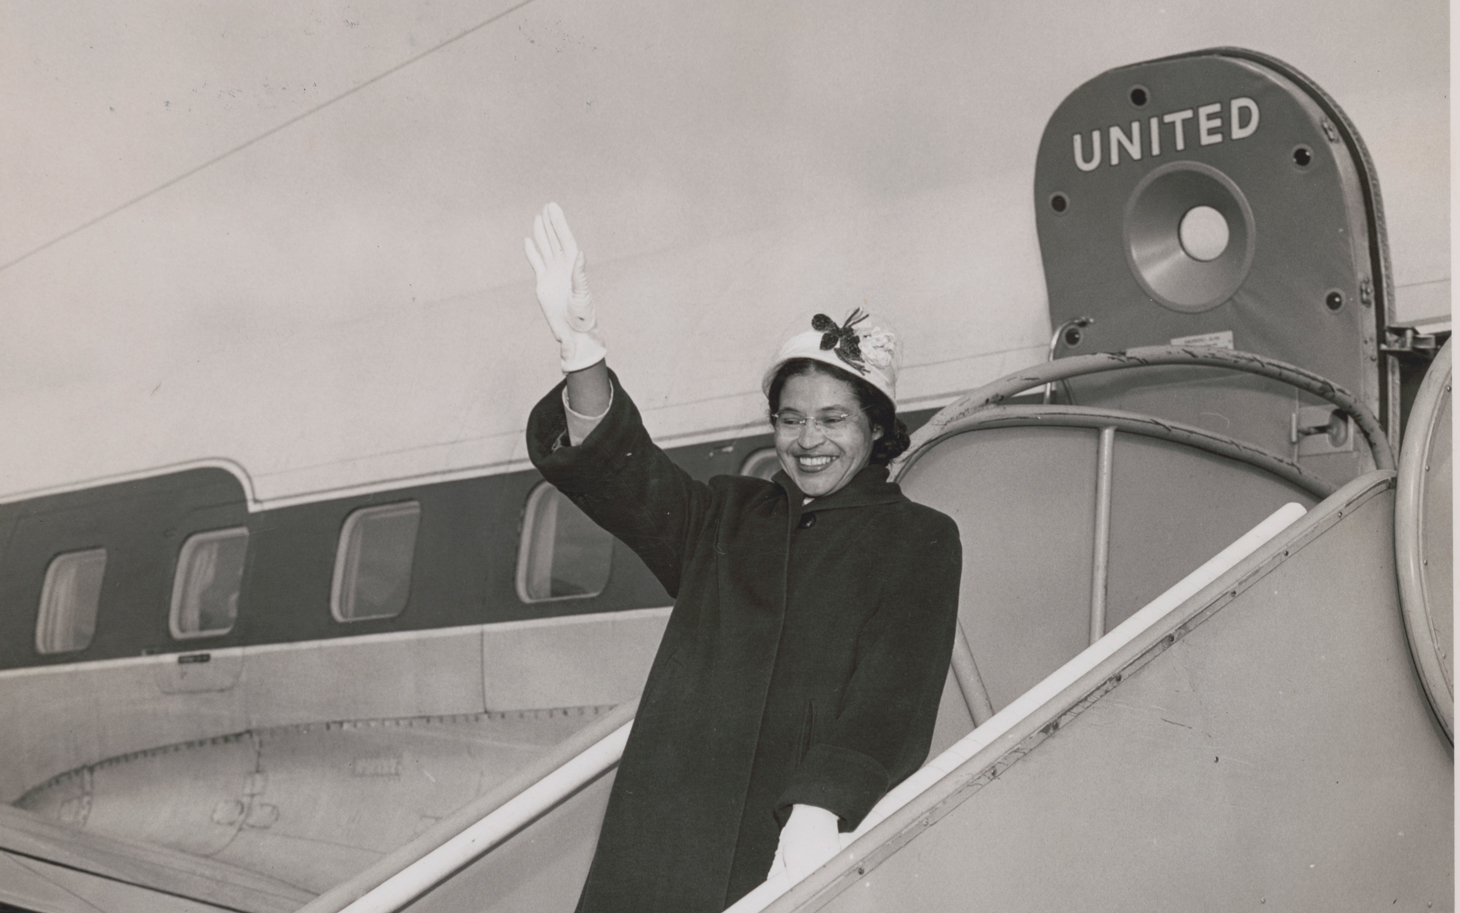 rosa parks research paper outline How to write your rough draft research paper your complete outline rosa parks was an african american woman who refused to give up her seat on a bus to a.